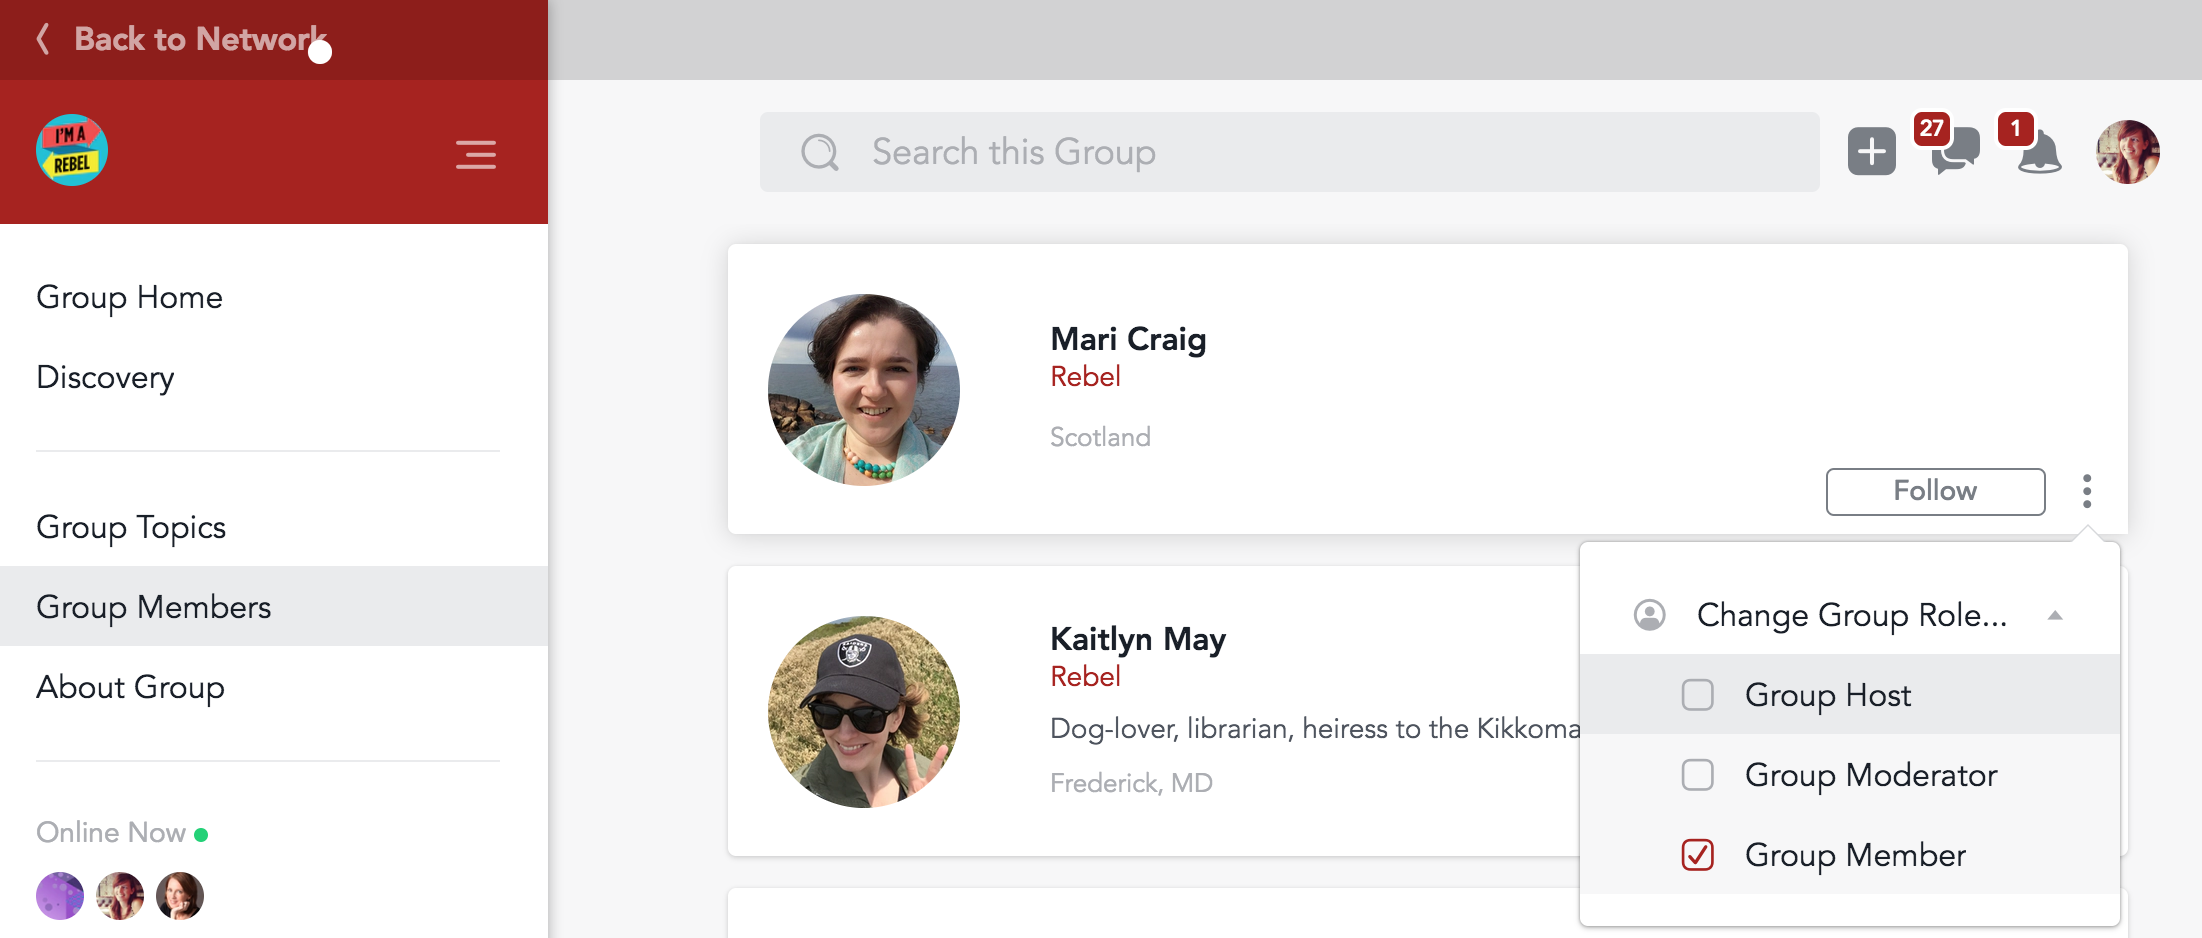 Screen_Shot_2018-10-04_at_5.30.56_PM.png